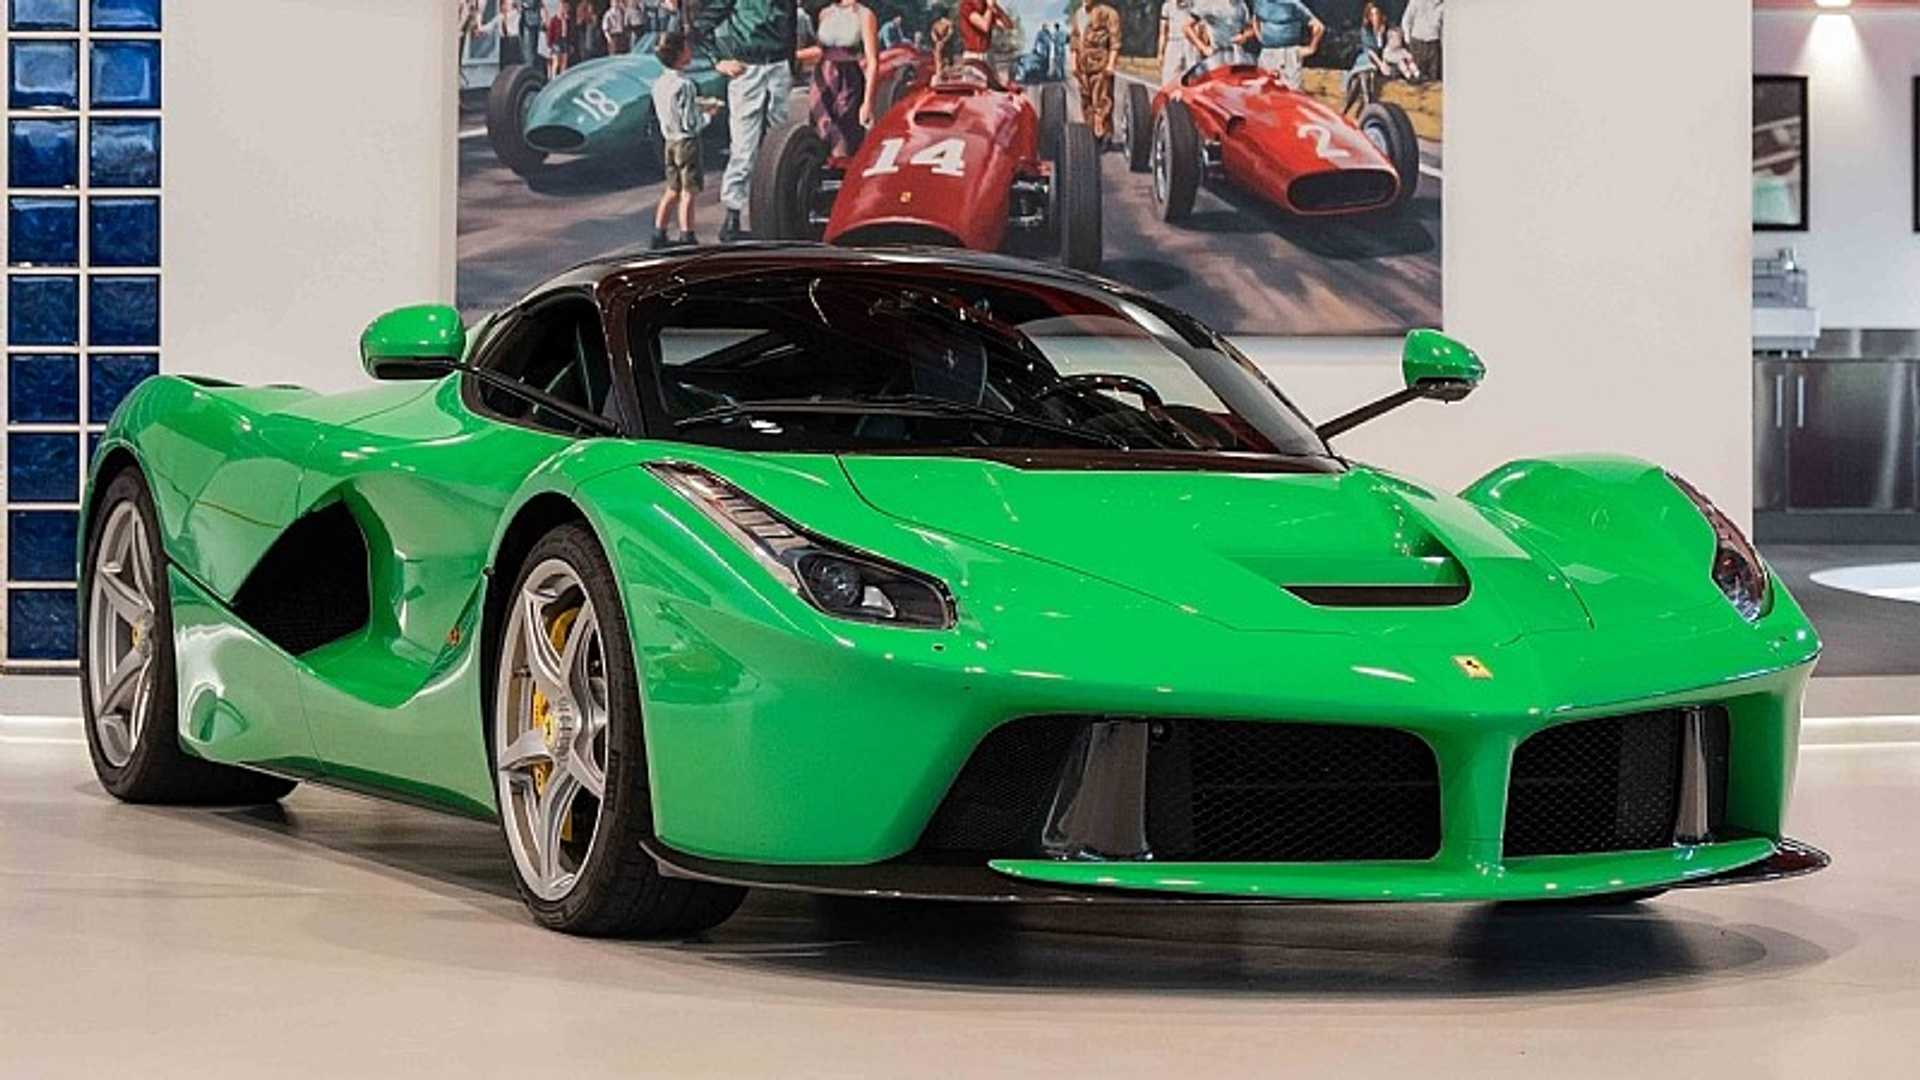 Ferrari Laferrari For Sale >> Jay Kay S Green Laferrari Is For Sale